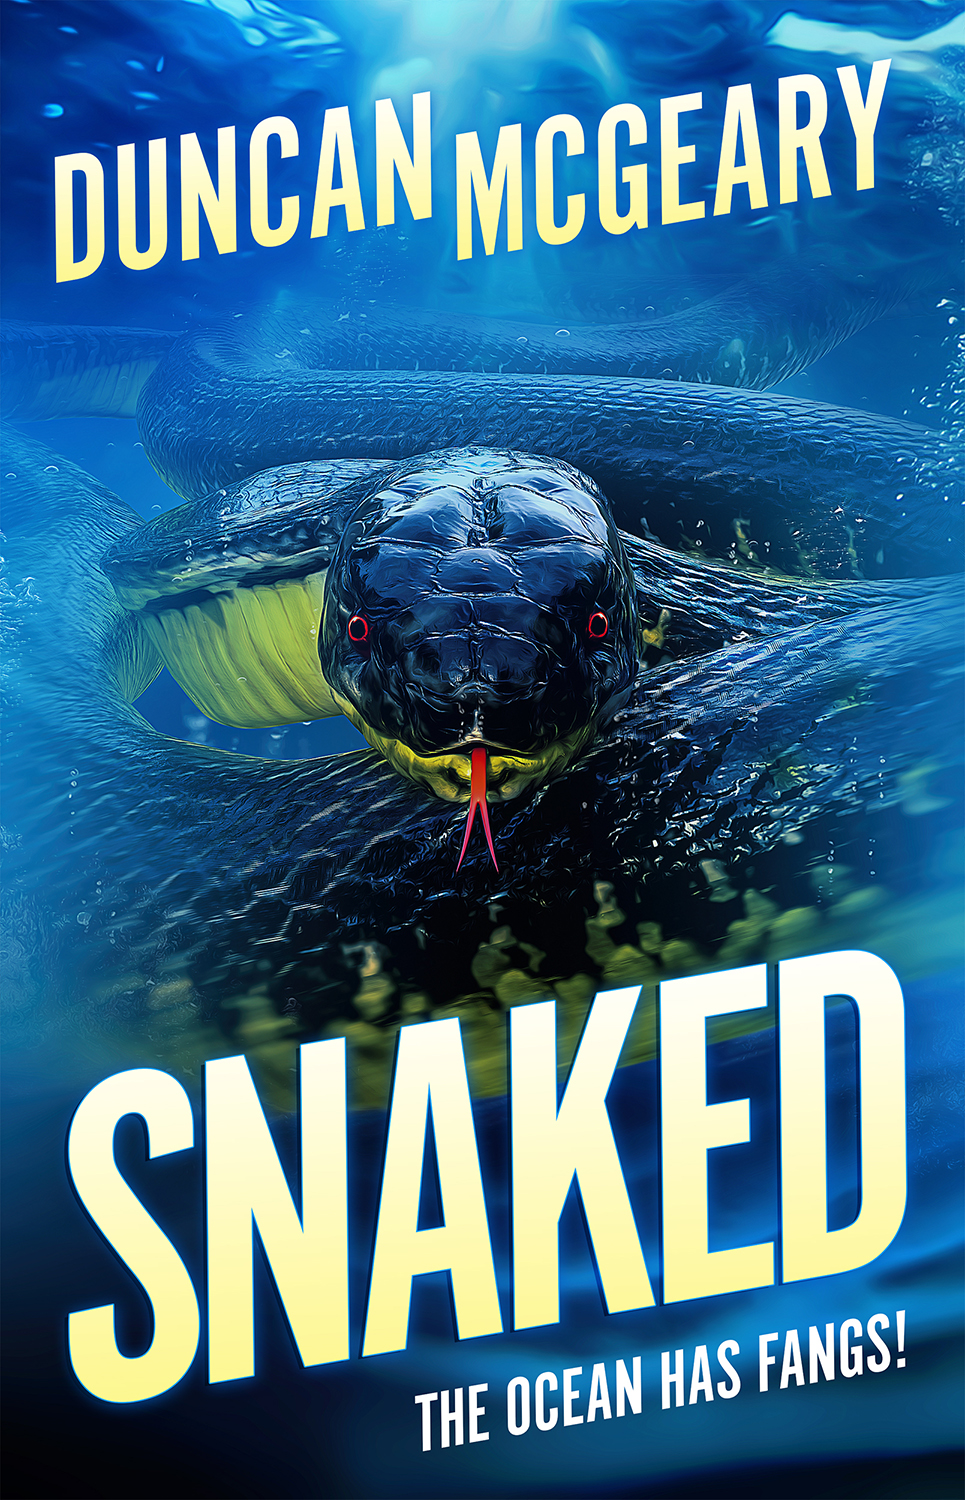 Snaked - Within the Juan de Fuca fault, monsters stir.A coastal town nestled just outside Seattle, Everett is a picture-perfect paradise, but the Indigenous myths tell of when the darkness came out of the ocean and killed everything, the world cleansed and begun anew. An unusual specimen washed up on the shore has Professors Charlie Wice and Carol Wheatley buzzing with excitement, but what the ocean has spat out is far more dangerous than either could imagine.As the darkness slithers closer, and the deaths start to mount, the residents of Everett and St Aloysius Island are locked in a battle against an enemy as implacable as they are numerous. As the earth shakes once again, another battle looms on the horizon – fast flowing and deadly. Who will survive when the ocean bares its fangs?